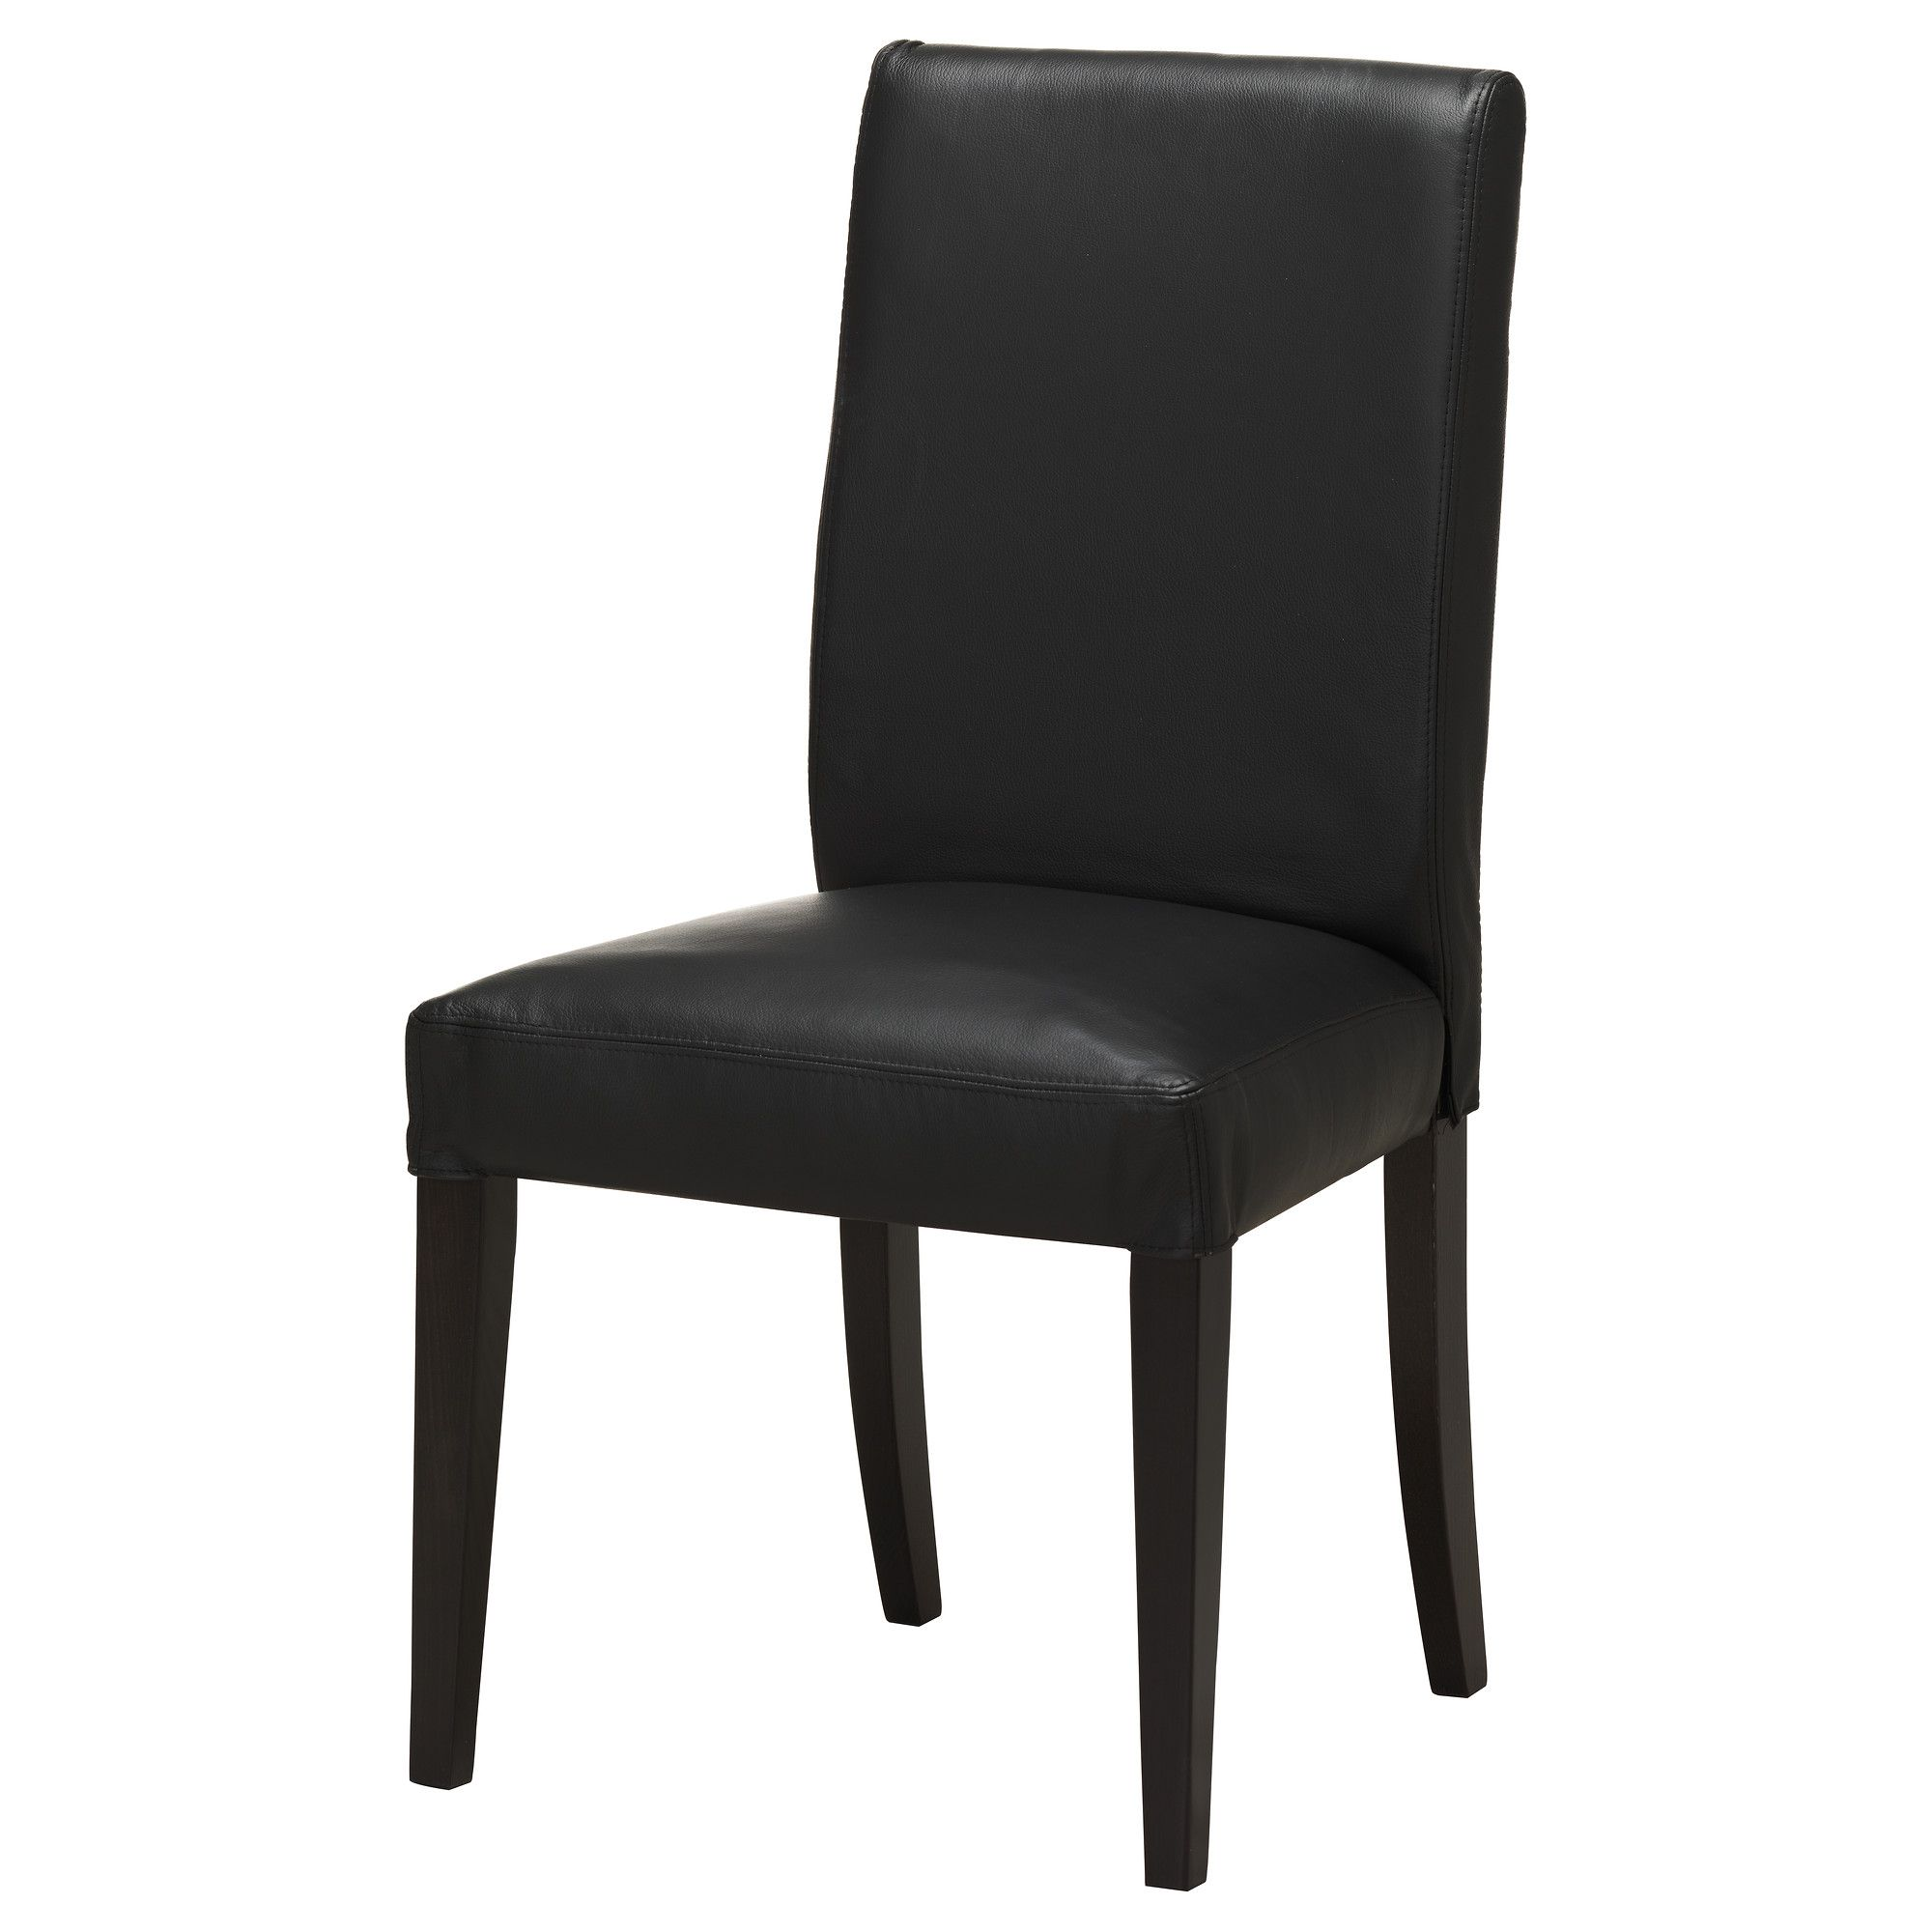 Black Leather Chairs Ikea Henriksdal Chair Brown Black Robust Black Ikea